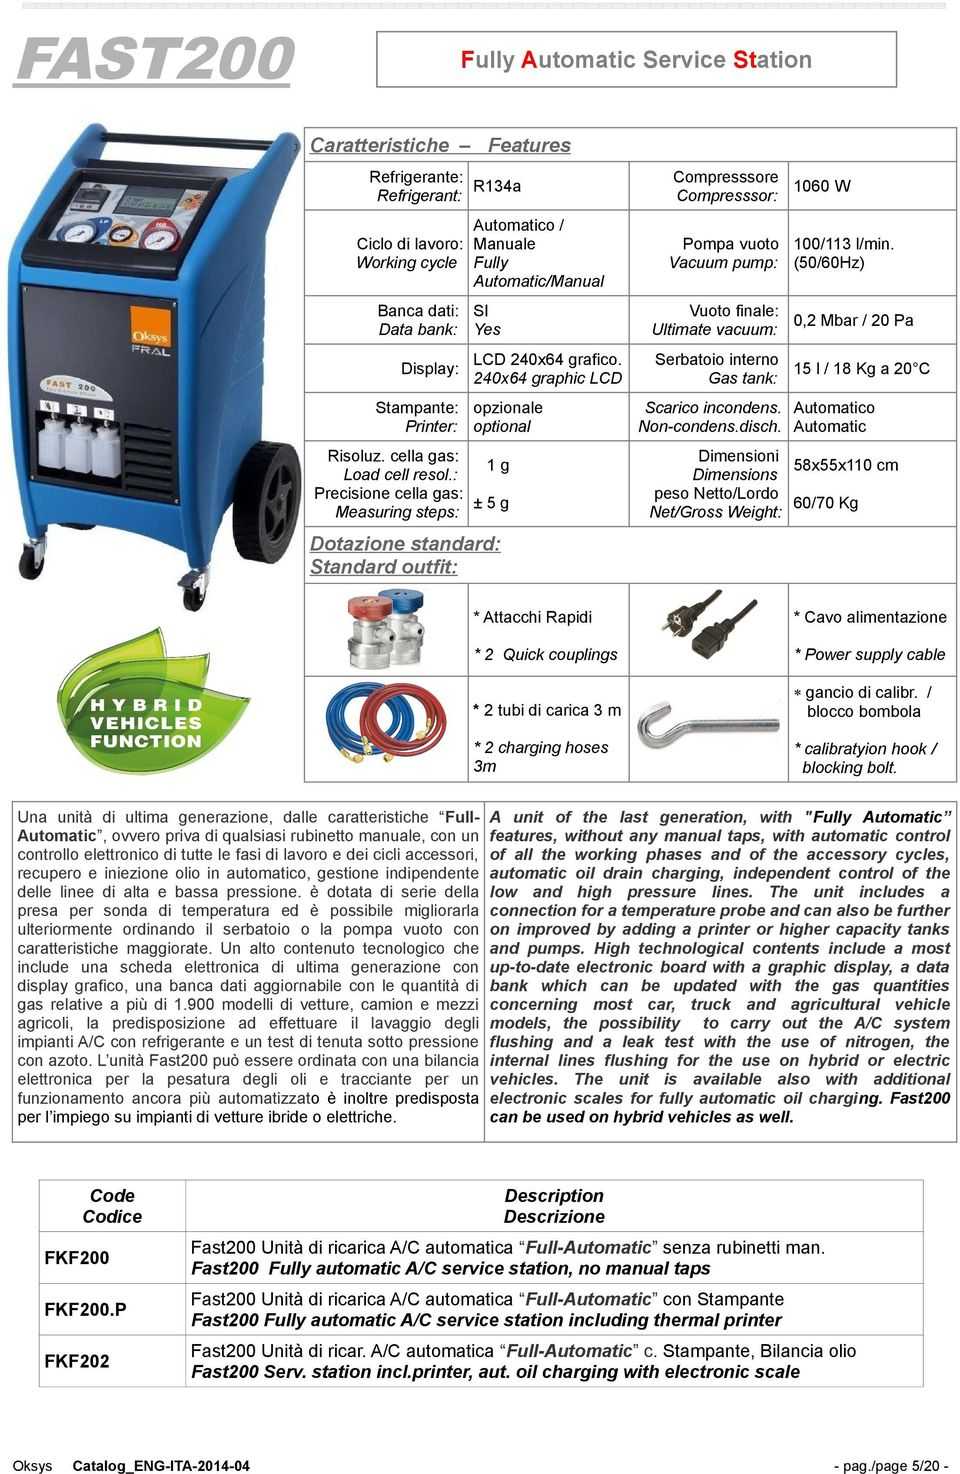 240x64 graphic LCD Stampante: opzionale Printer: optional Risoluz. cella gas: 1g Load cell resol.